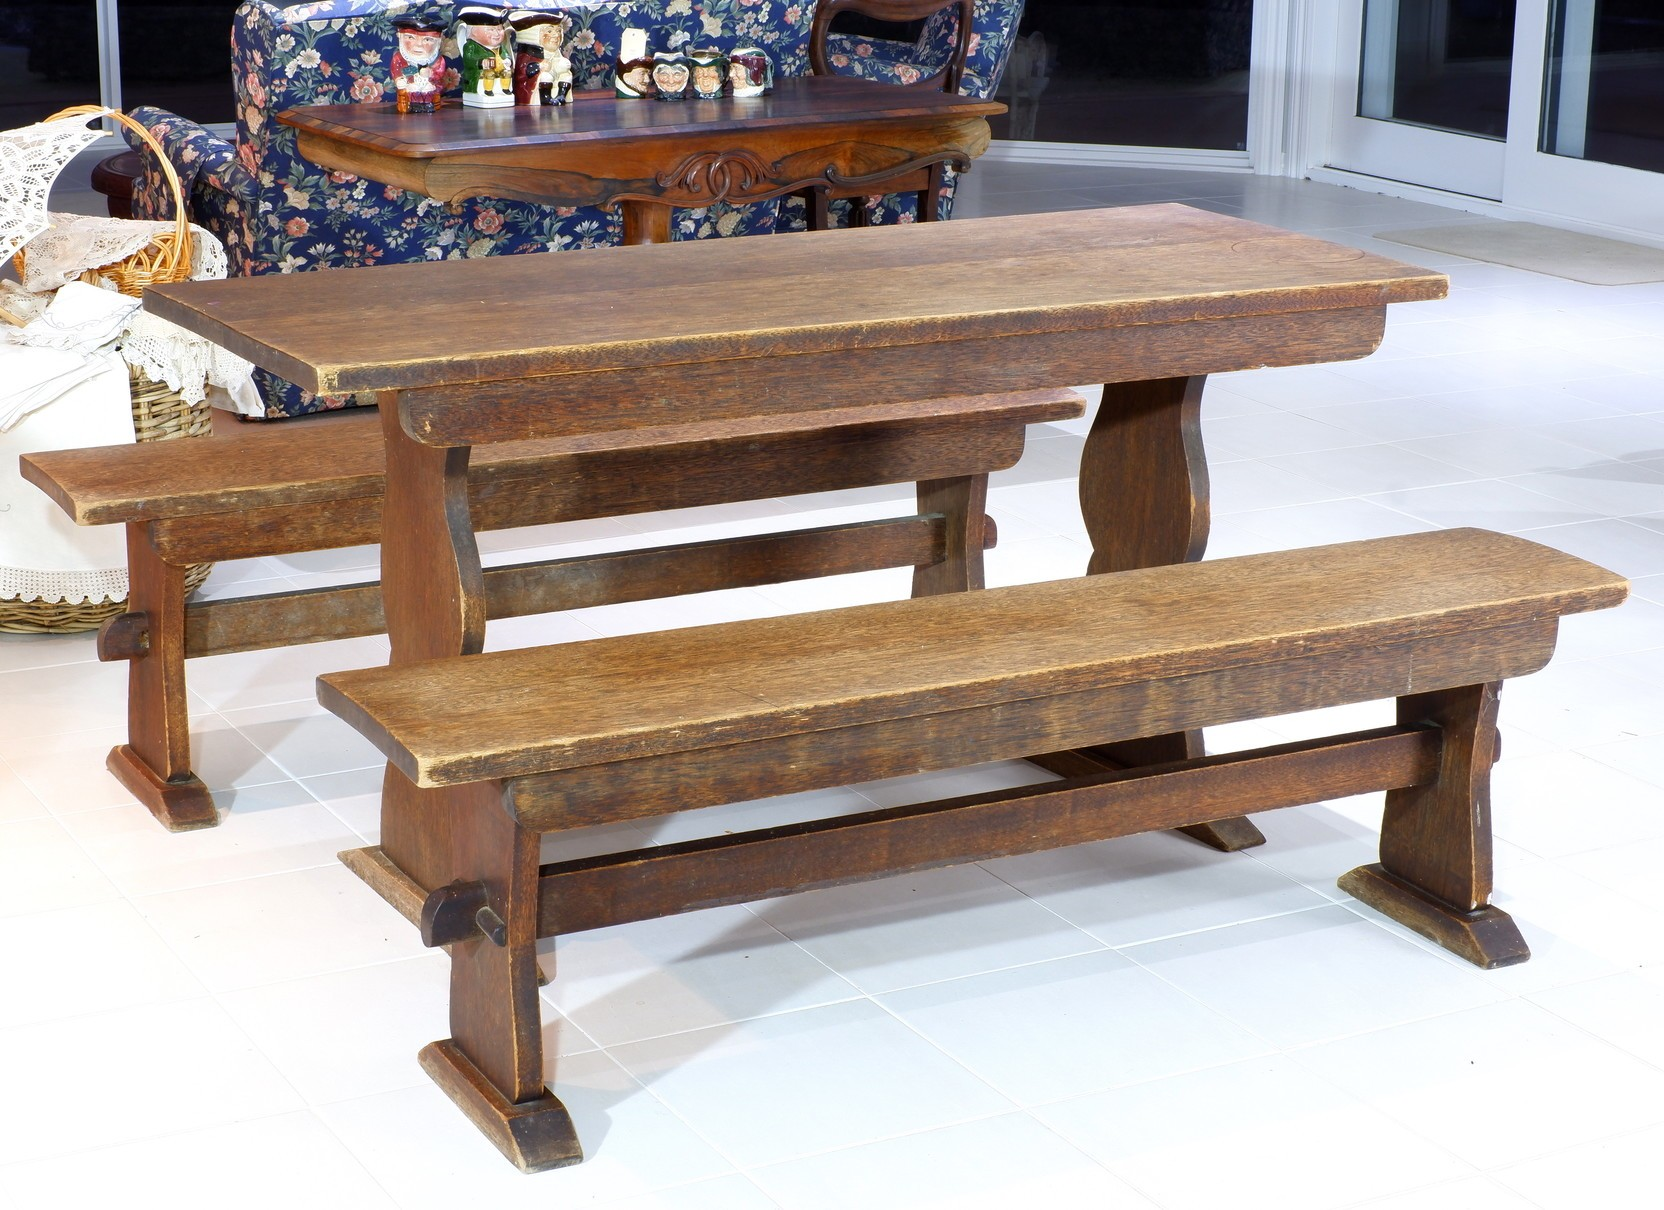 'Vintage Maple Refectory Table and Bench Seats'